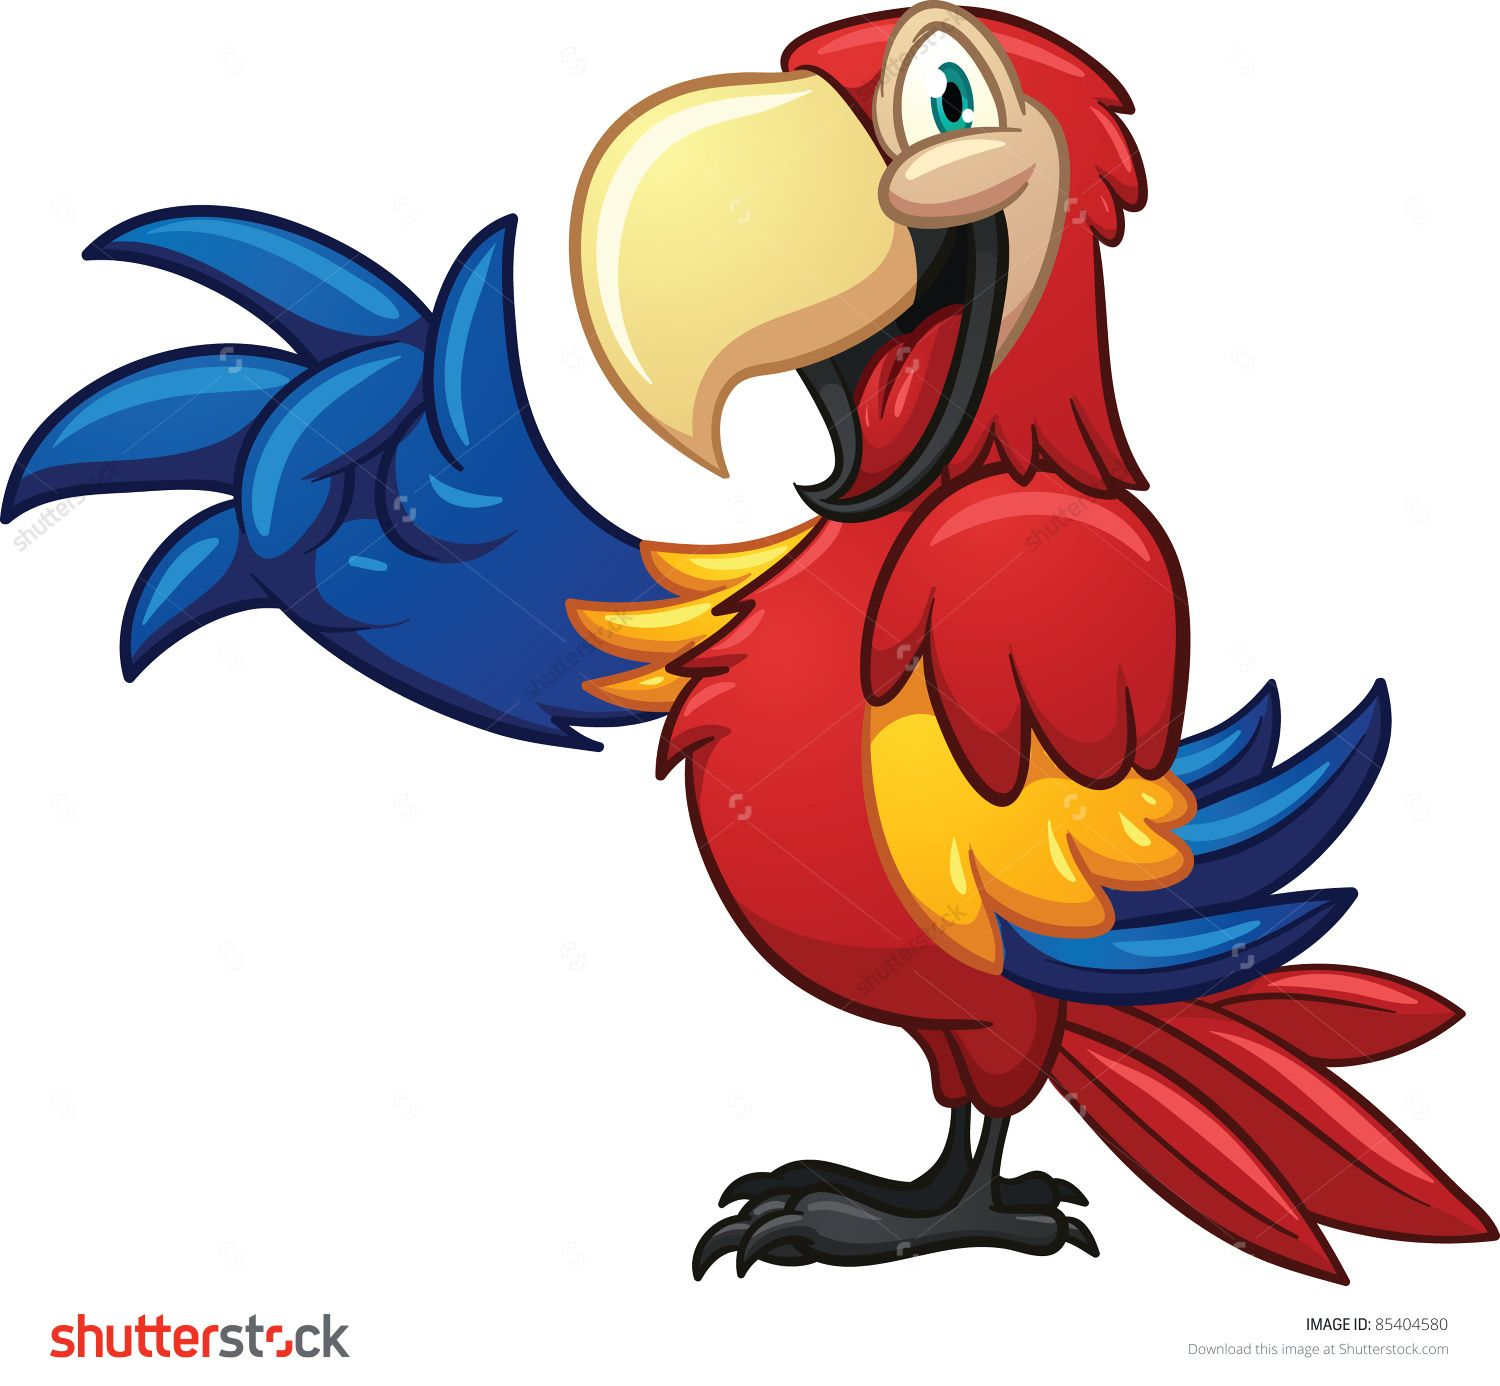 Cute cartoon macaw. Vector illustration with simple